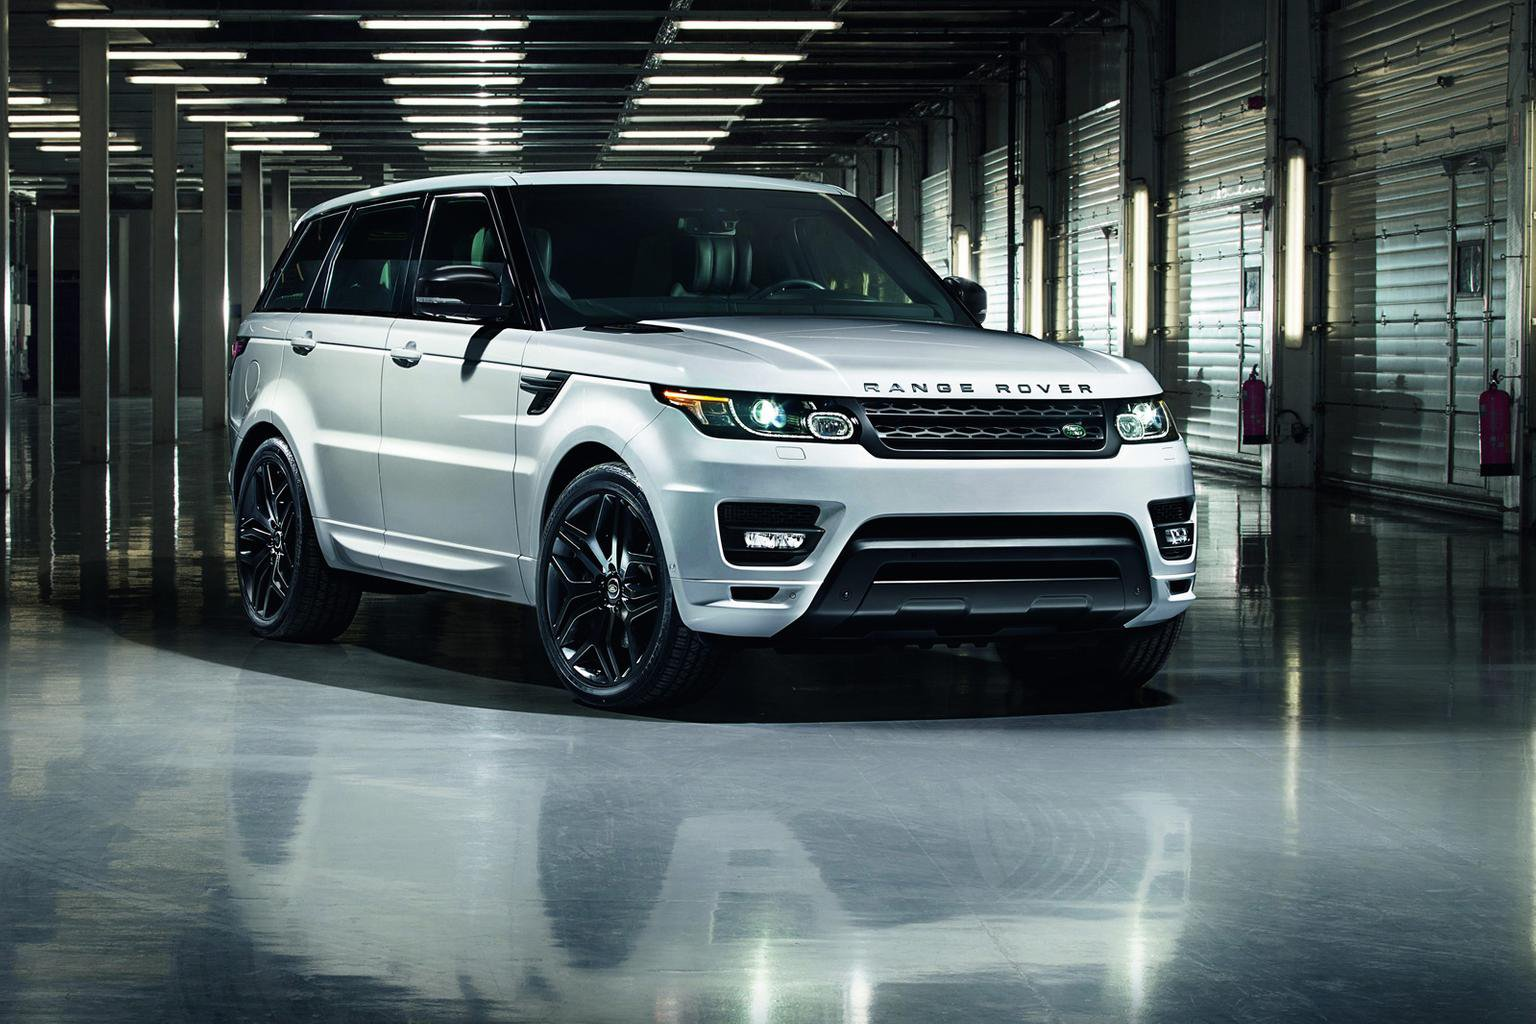 Range Rover Sport Stealth Pack due at Goodwood